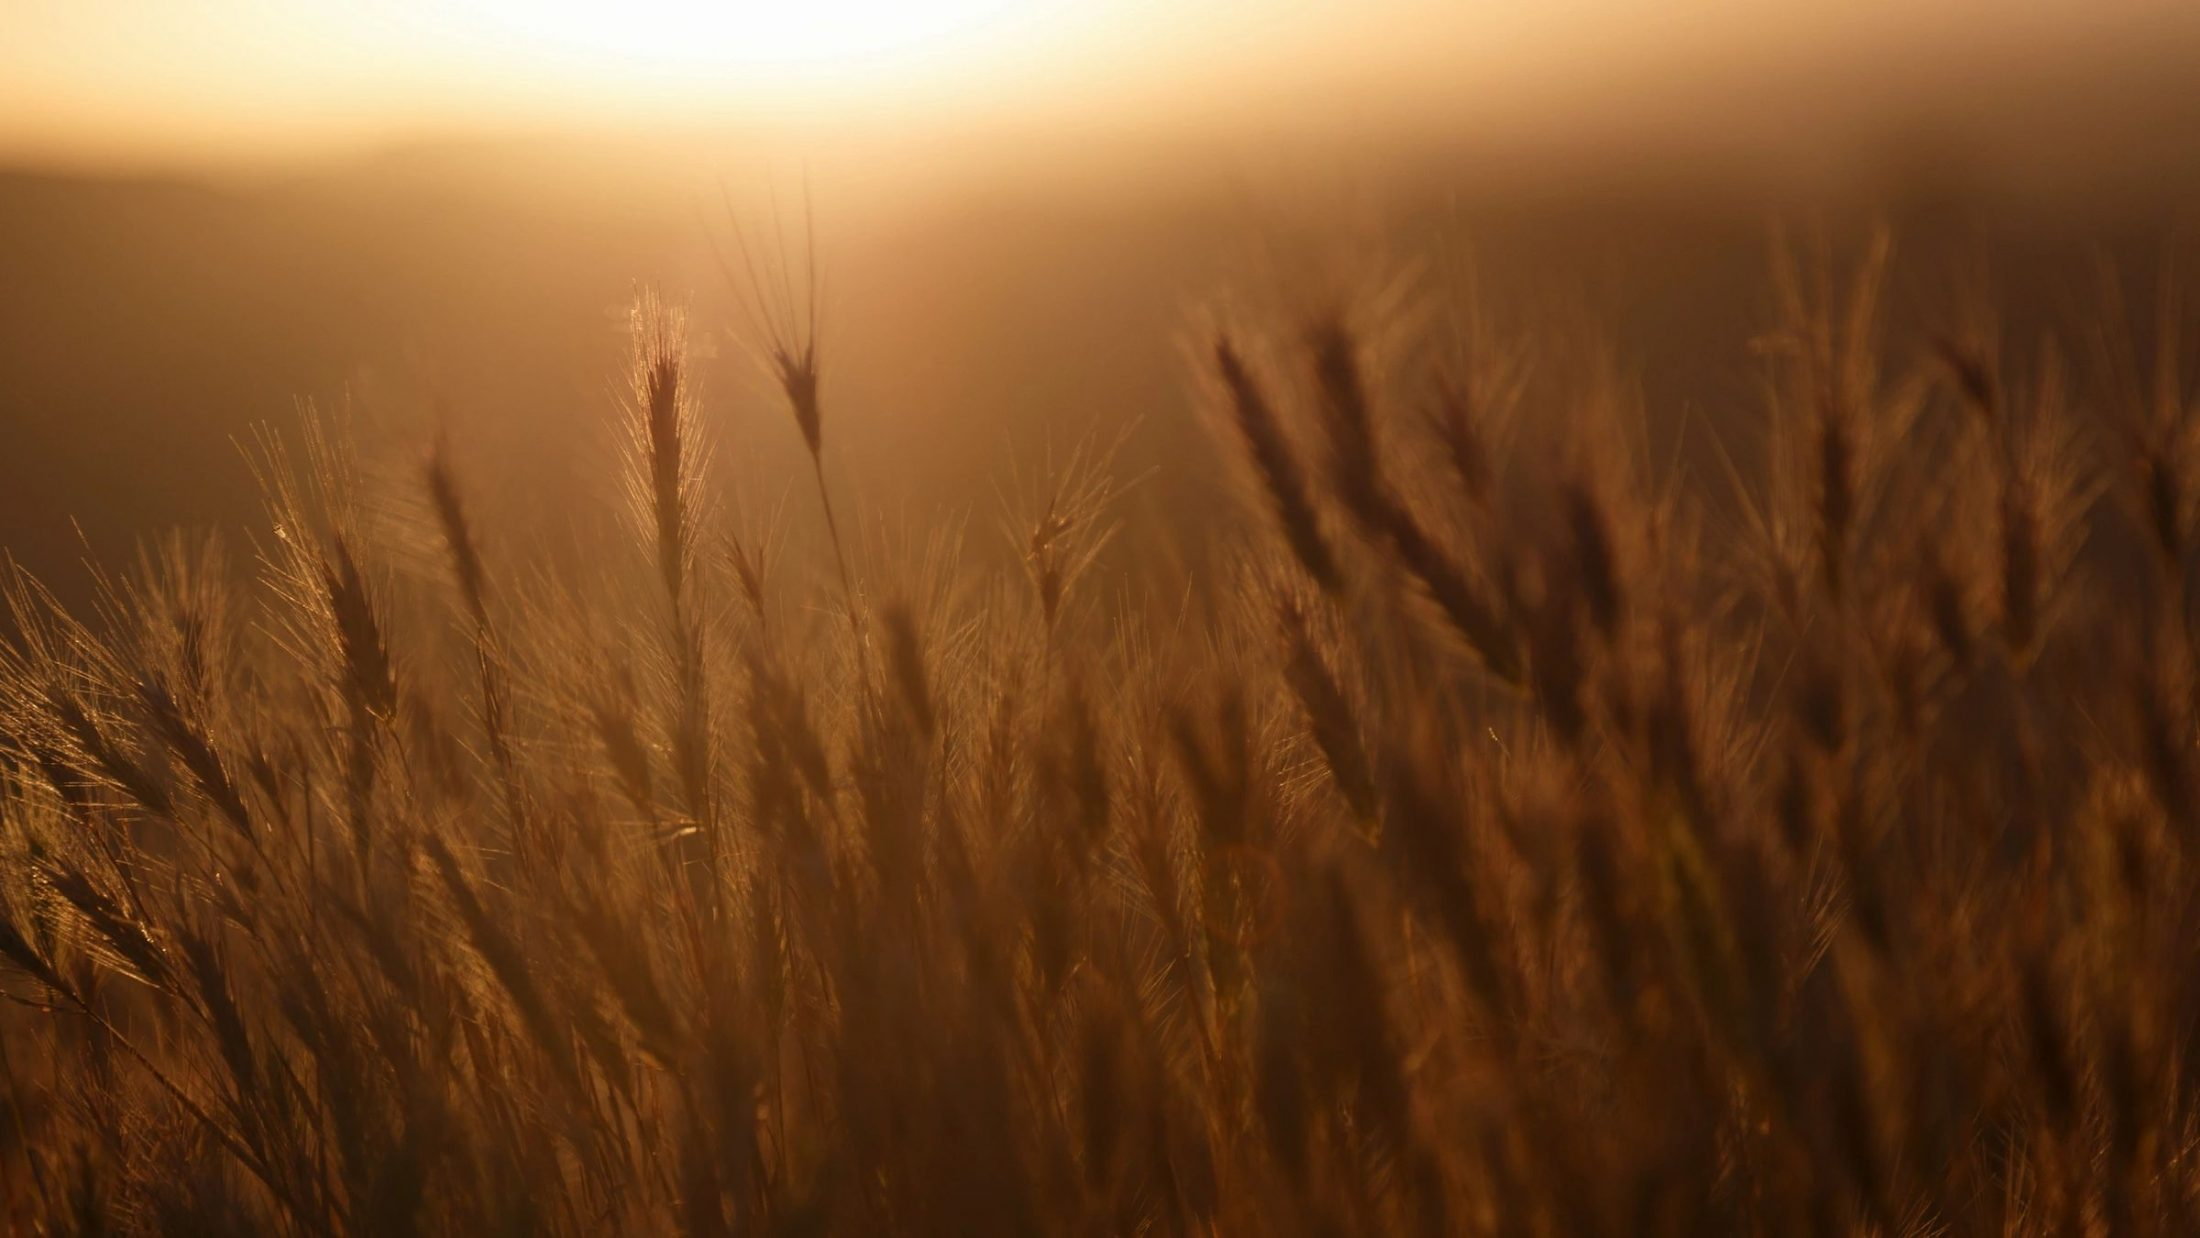 Wheat and sunshine for International Widows Day blog post by DC writer Marjorie Brimley